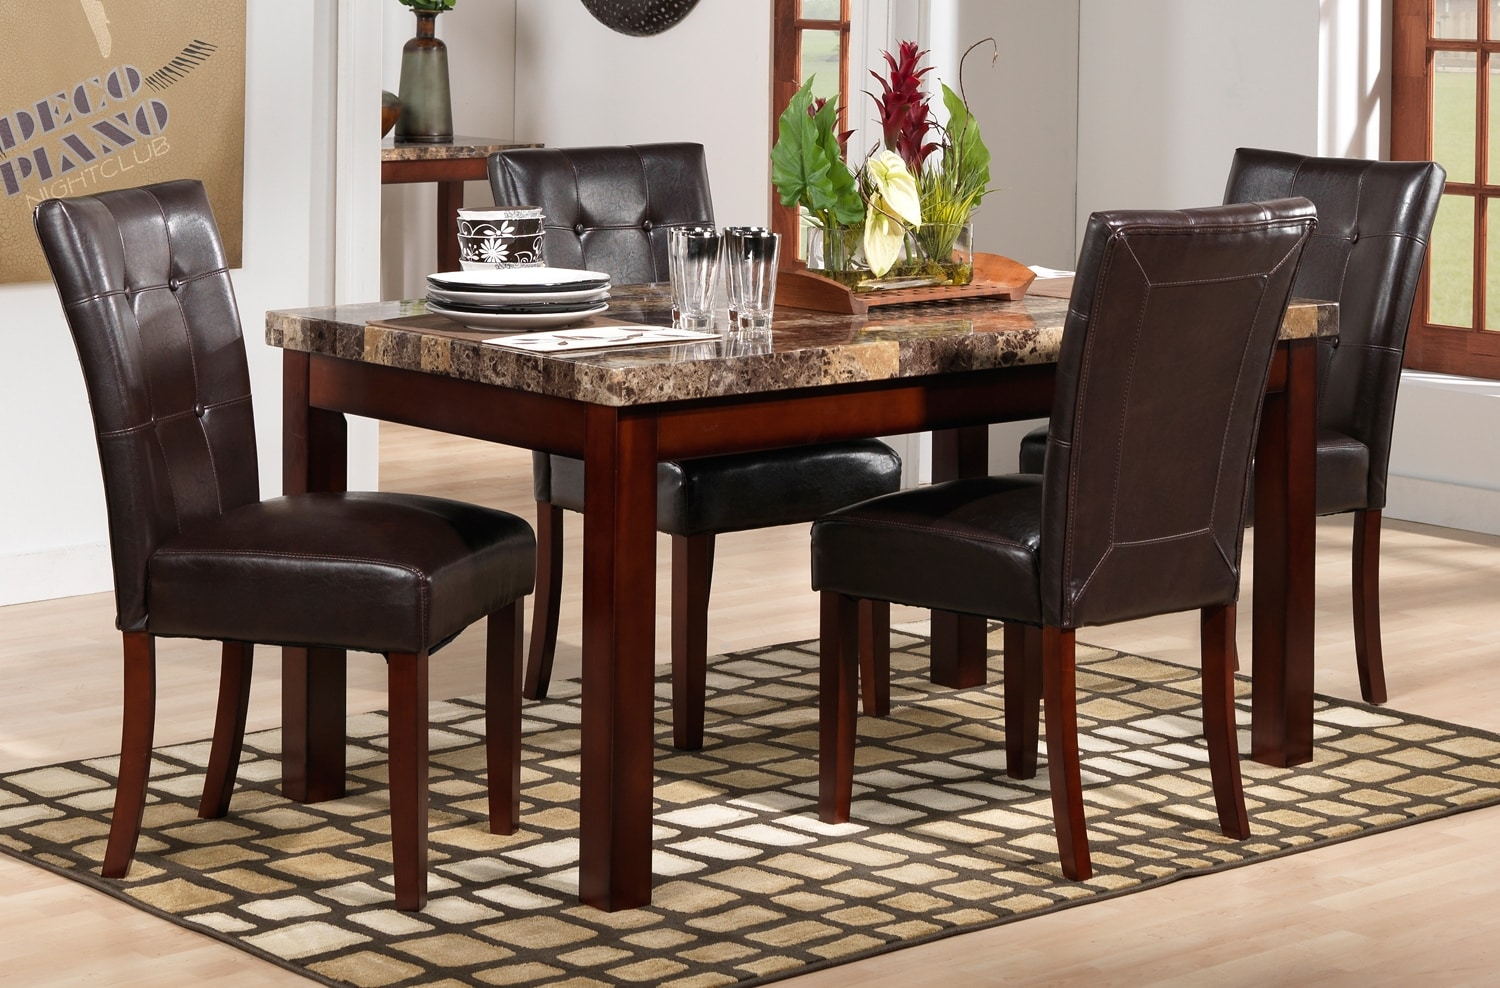 Dining table black friday dining table deals for Dining table deals